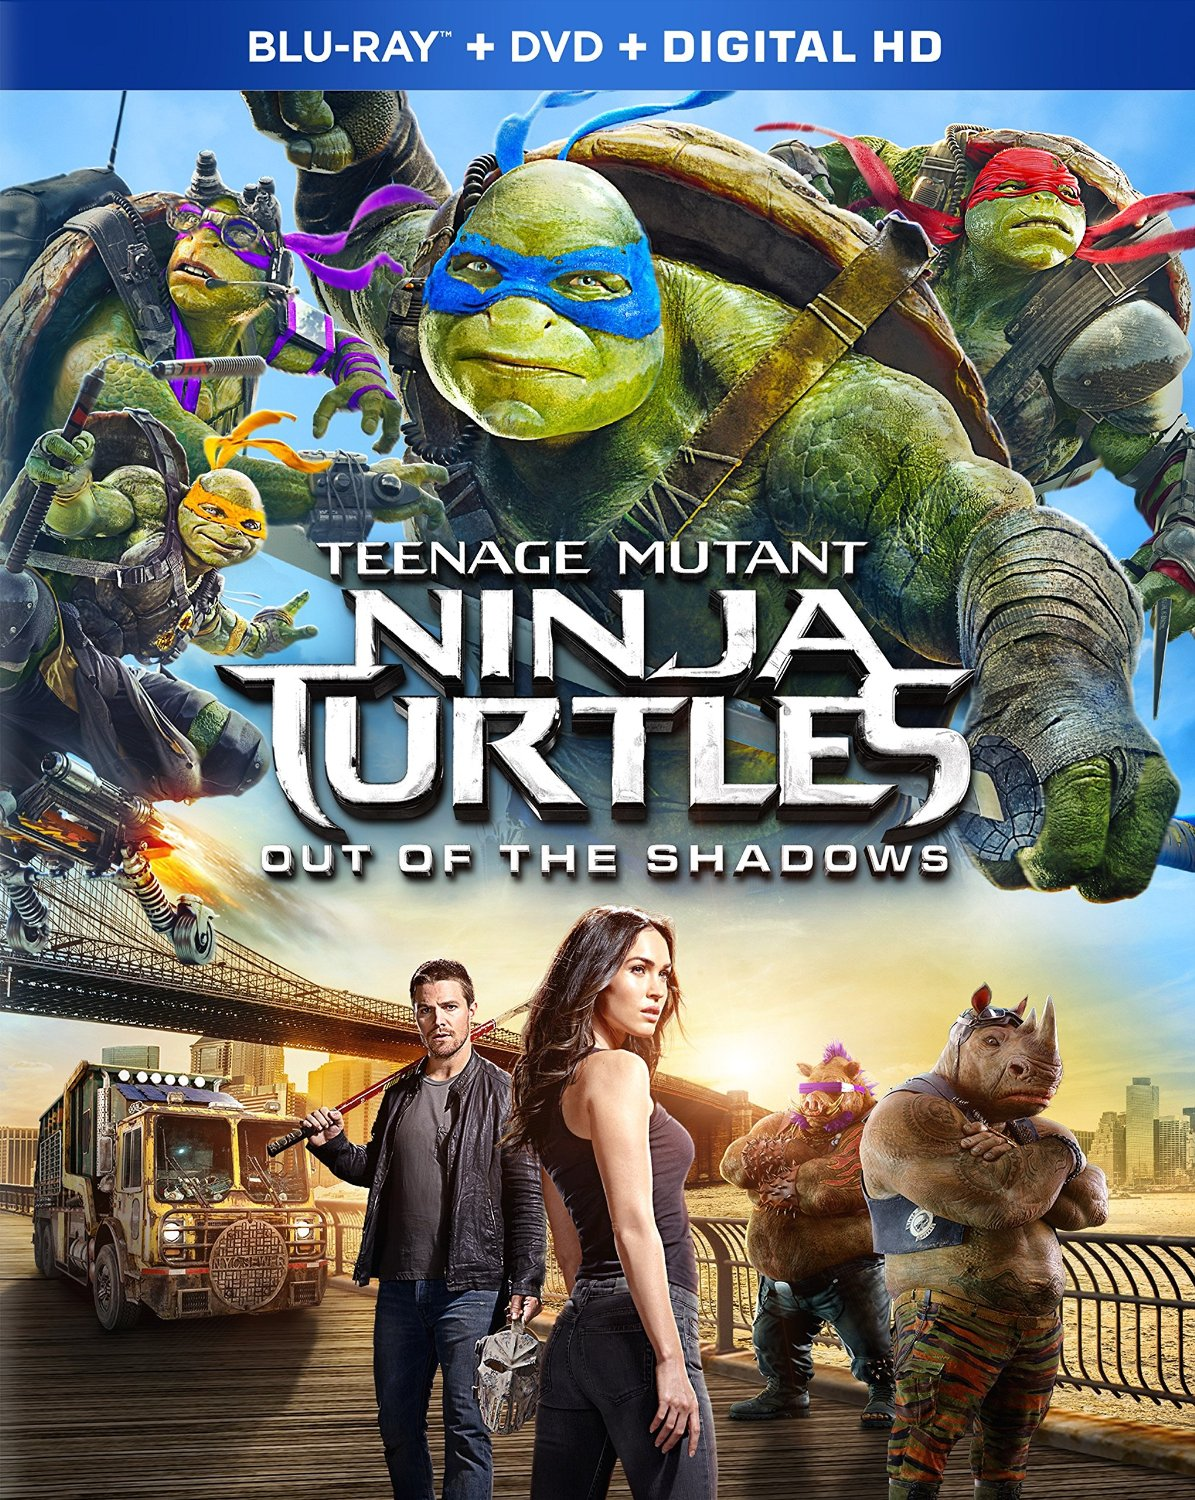 Teenage Mutant Ninja Turtles: Out of the Shadows cover